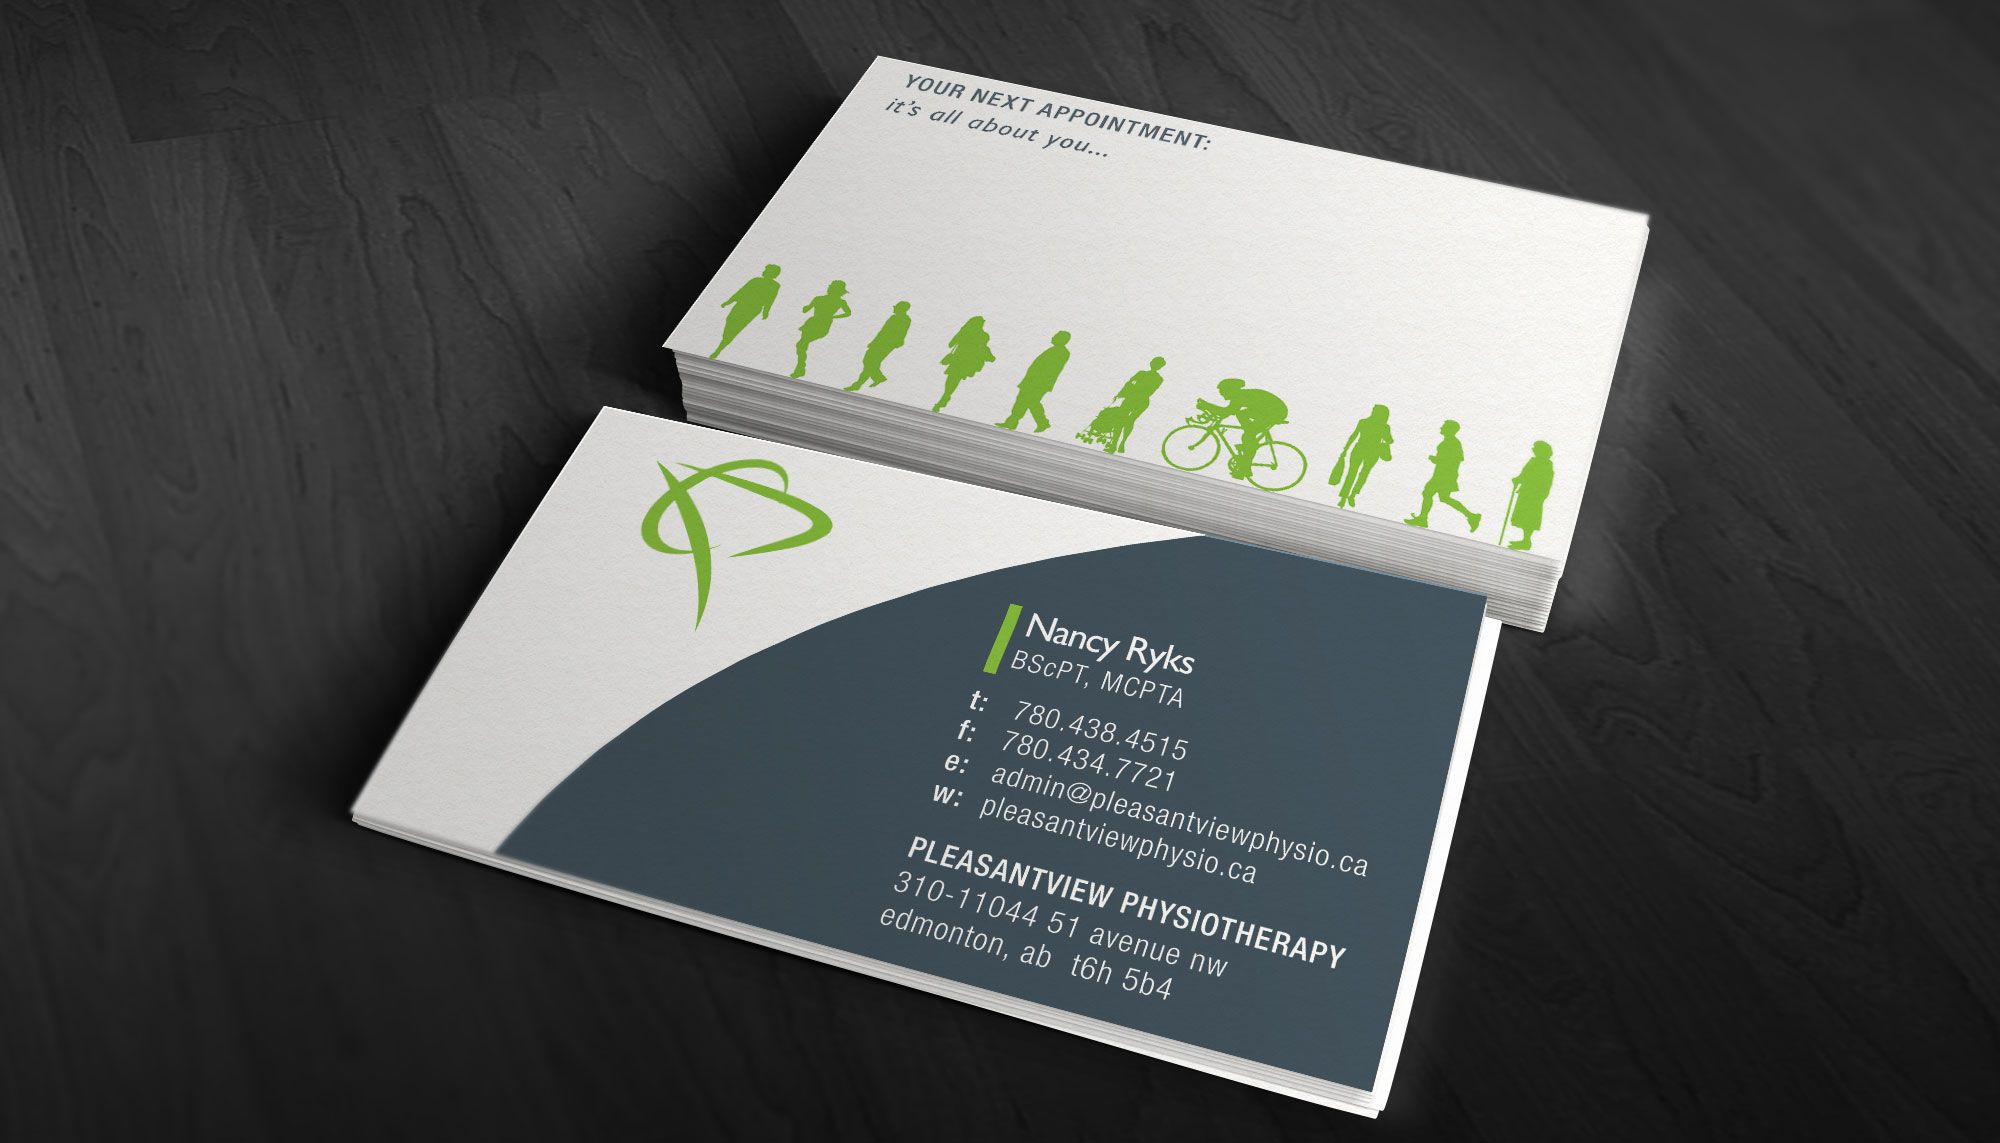 cool physical therapy cards - Google Search | cartão visita ...